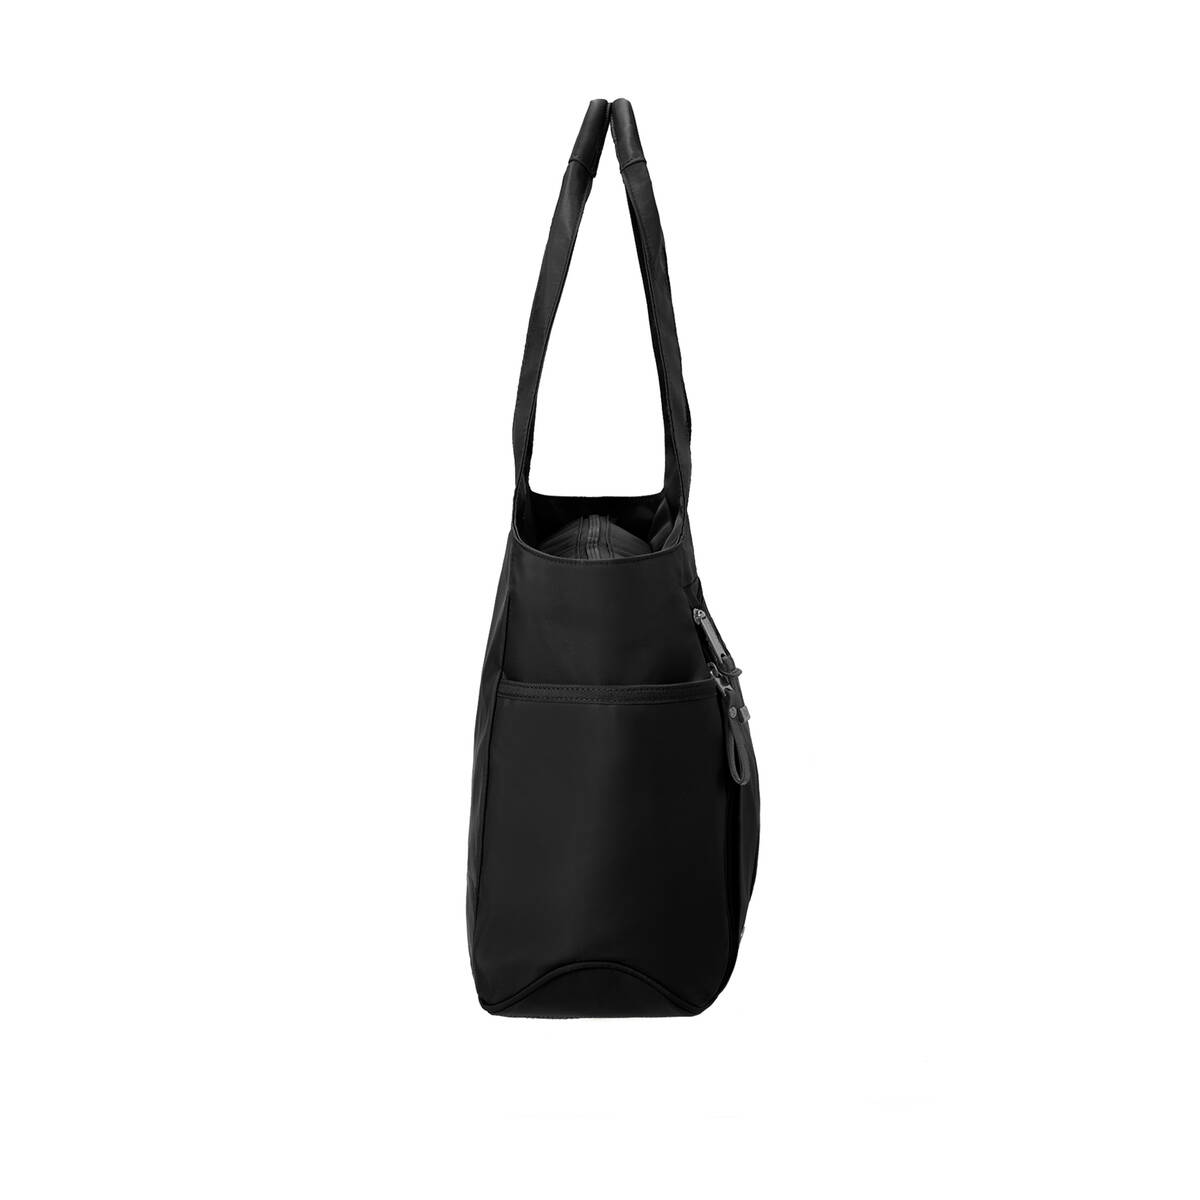 gumption medium tote bag